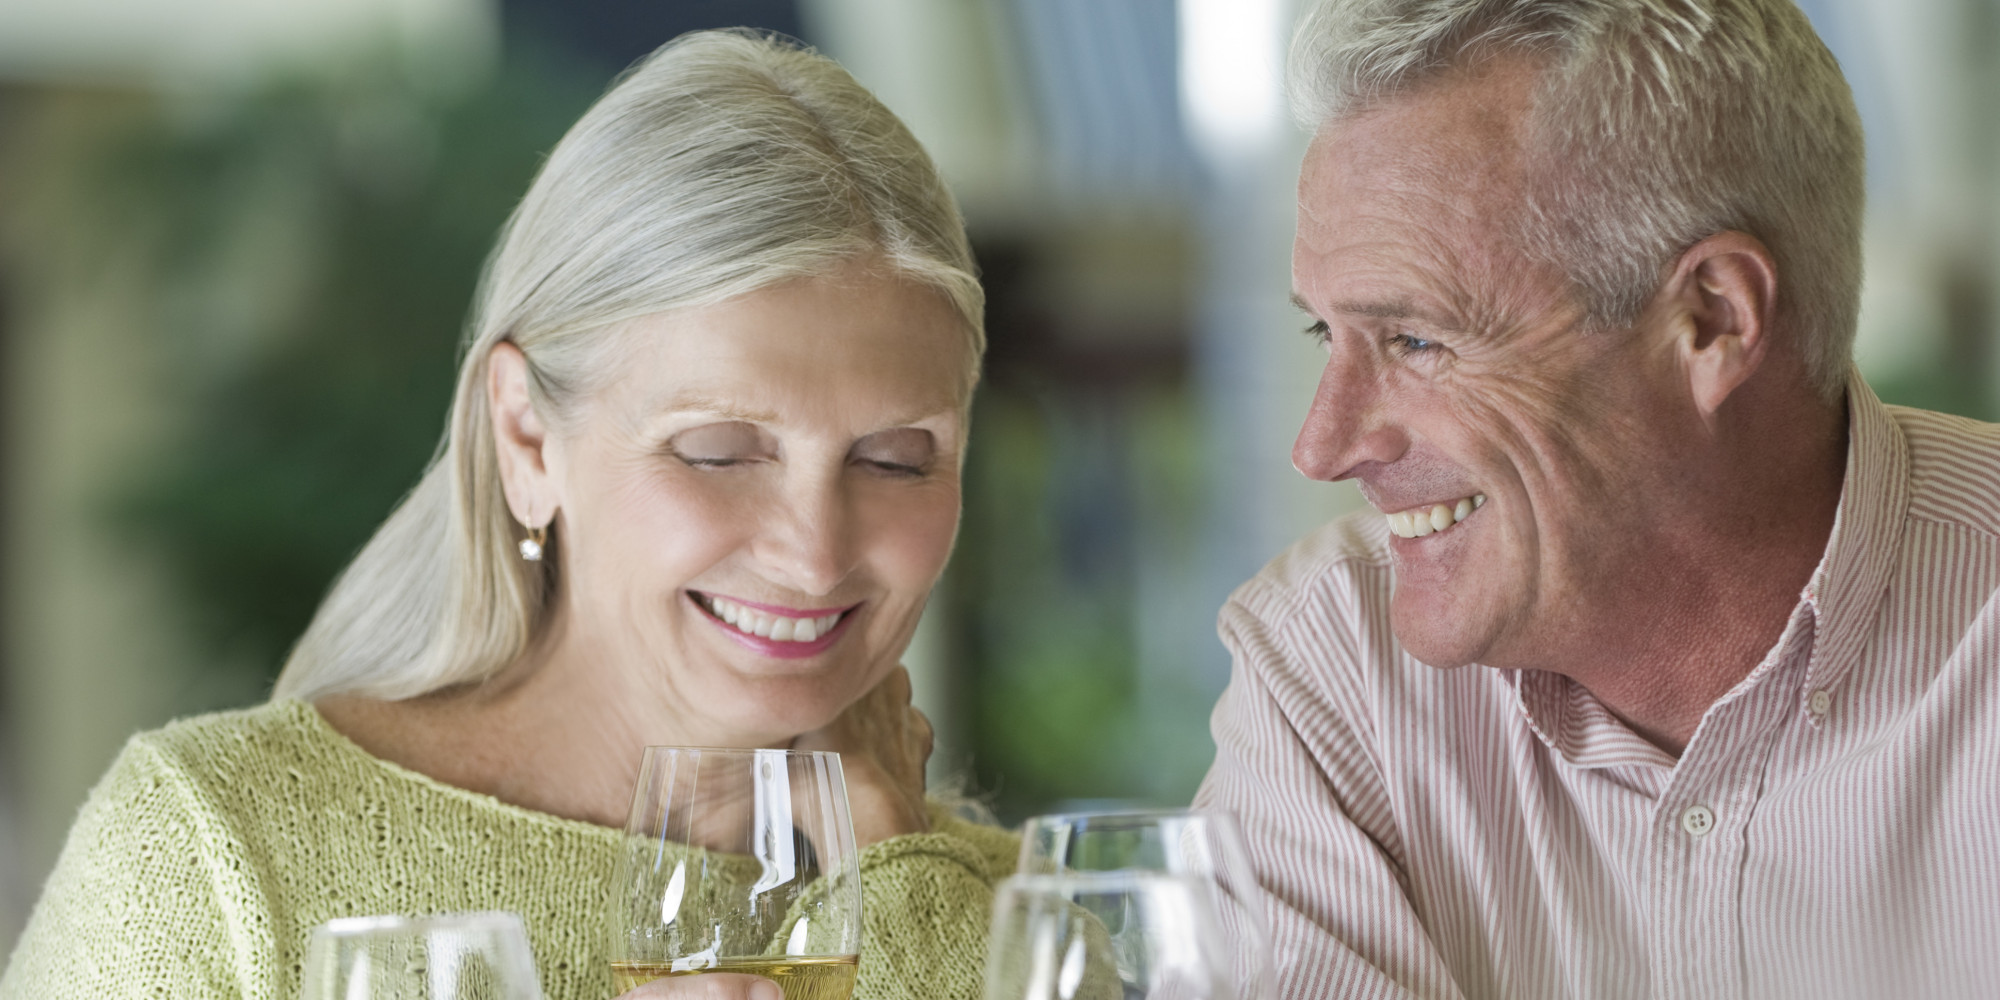 schulenburg senior dating site Seniorpeoplemeetcom is a dating site that caters to adults who are over 50 years in age the purpose of the site is to help seniors meet and date the age restriction helps to ensure that people are pooled in with people who also share the same interests.